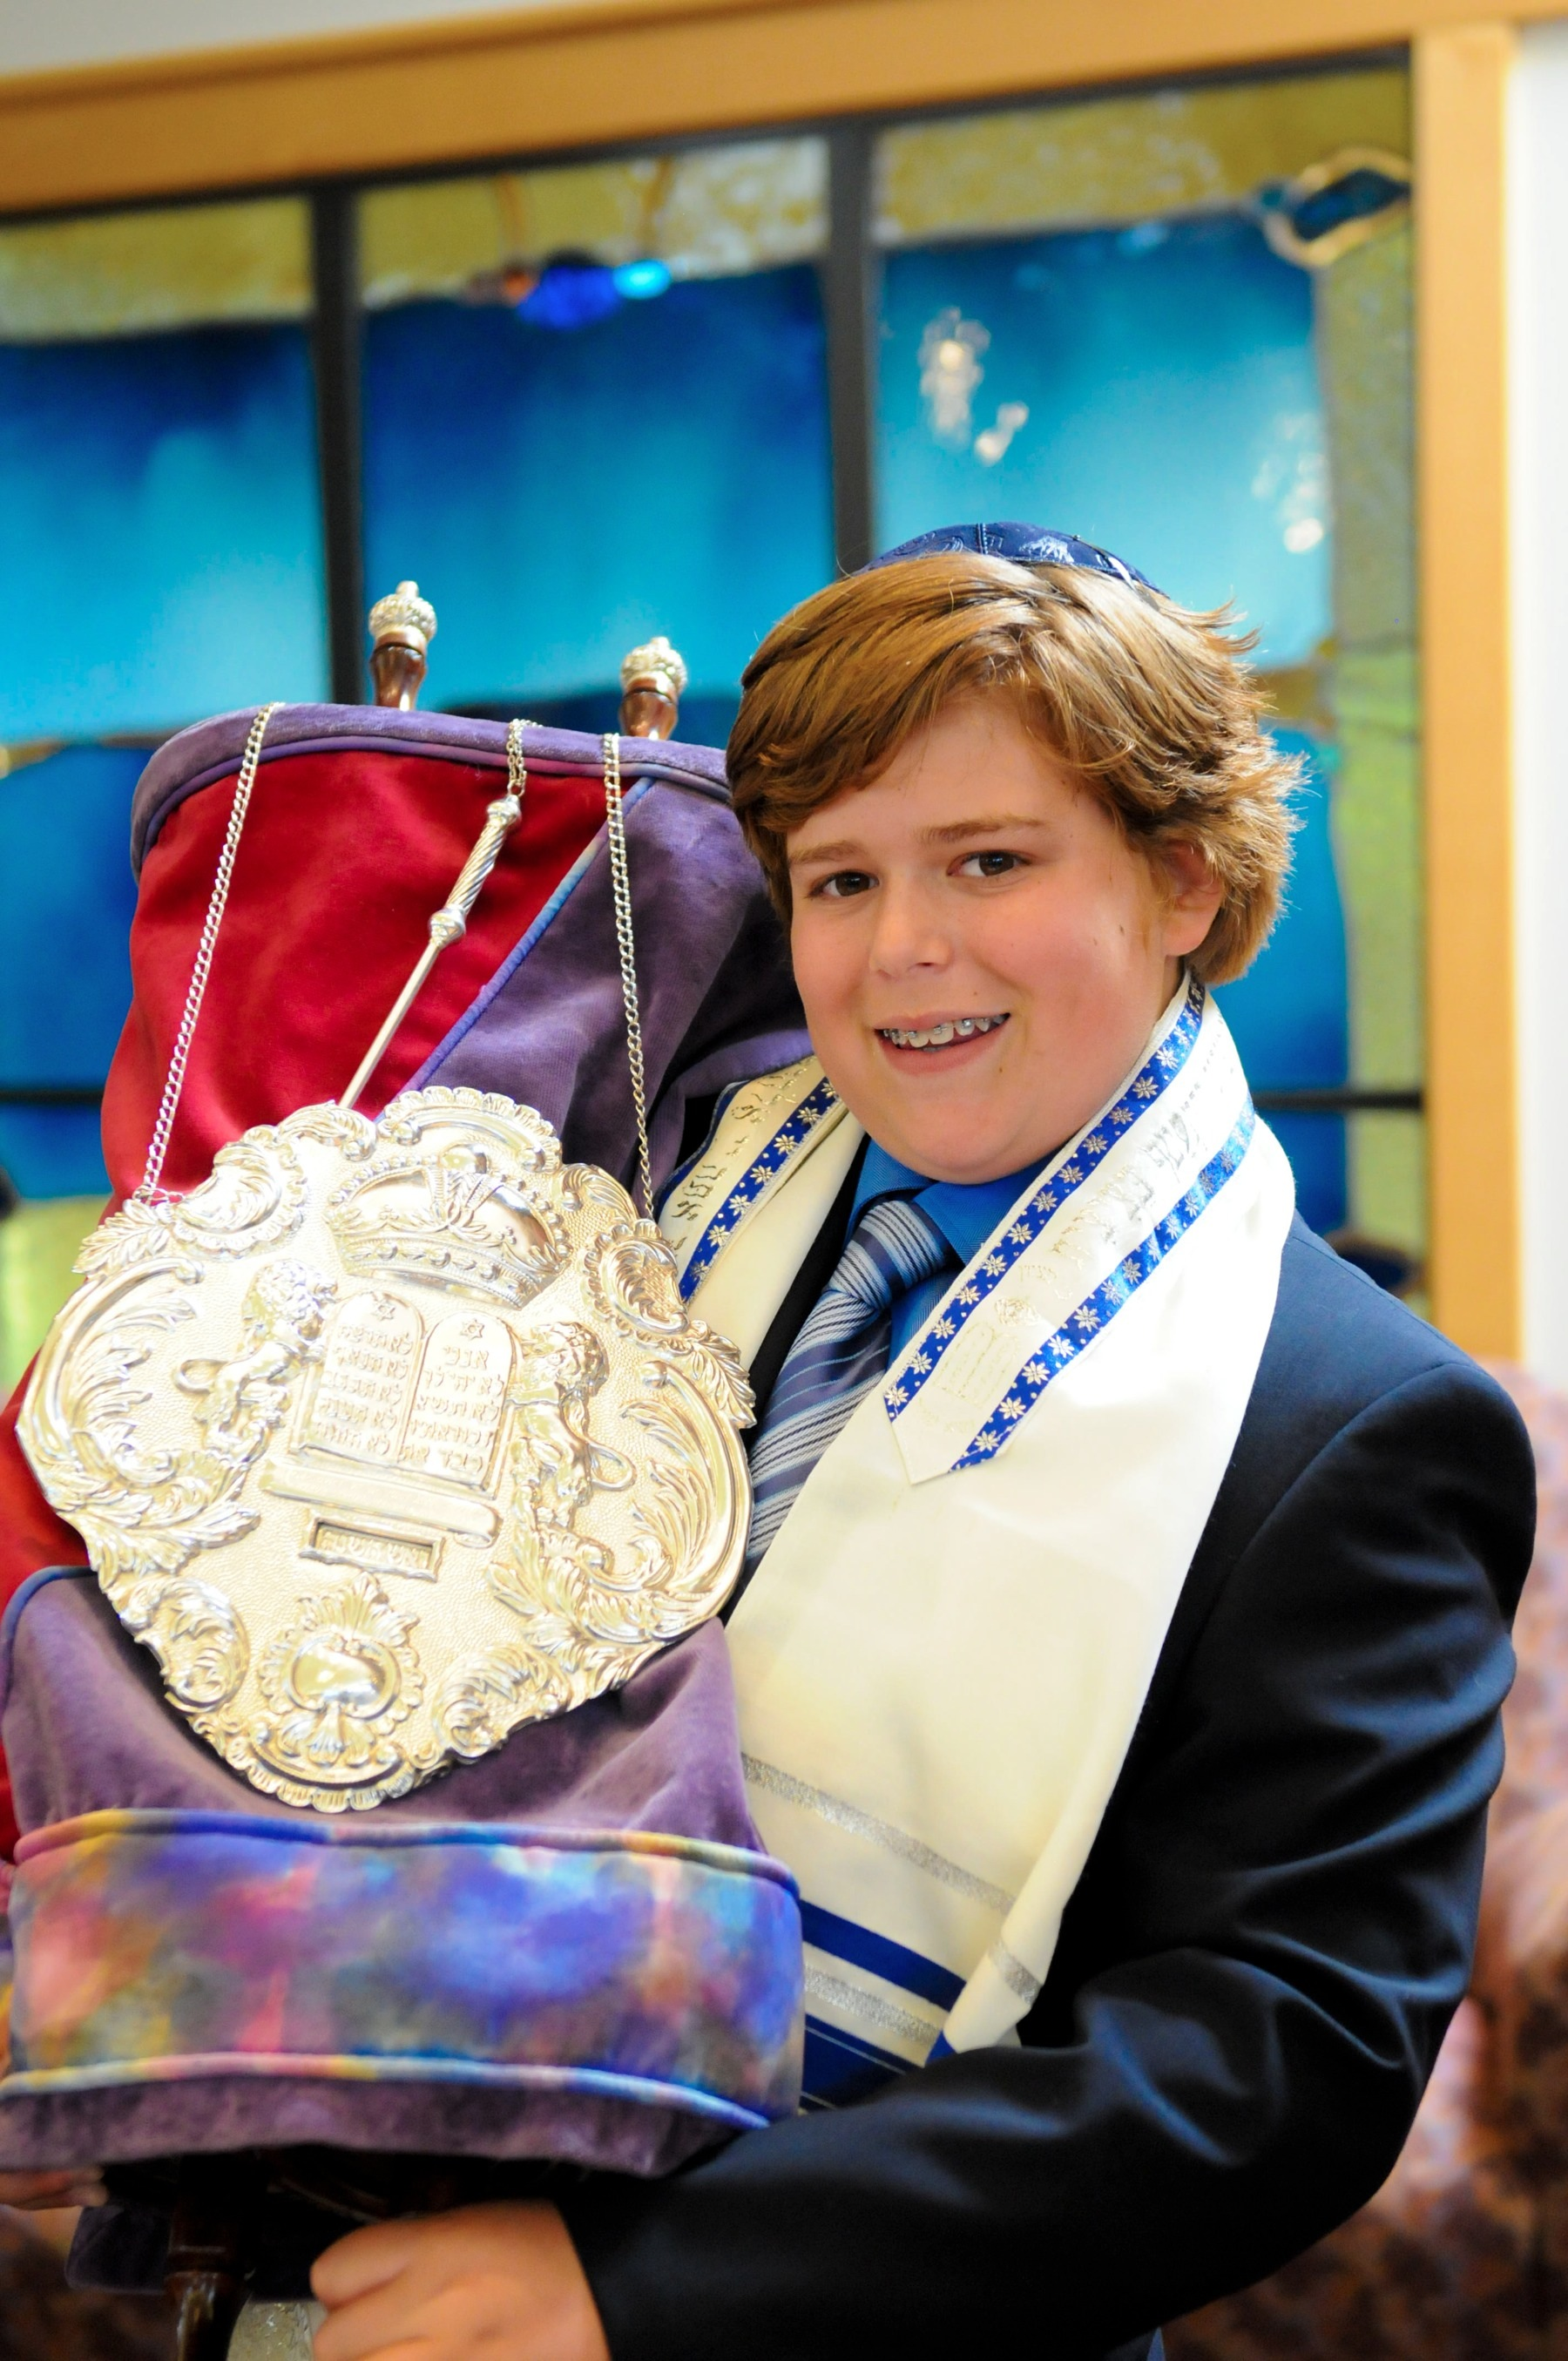 bat_mitzvah_bar_mitzvah_san_francisco_bay_area_photographer_party_photography_072